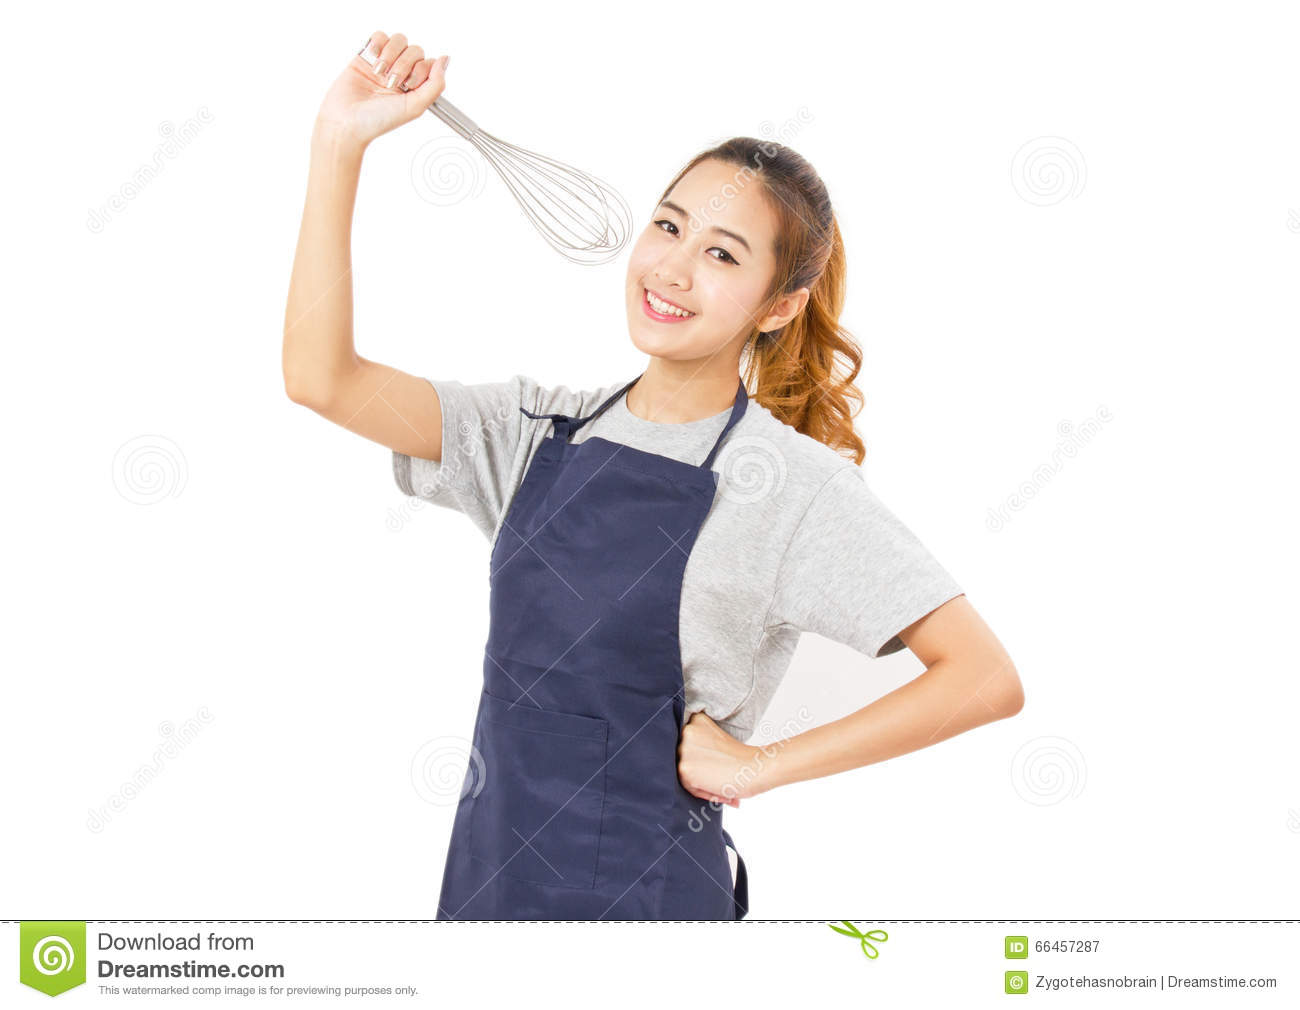 eddef90279b29a Asian Woman Wearing Apron And Singing With Whisk. Stock Image ...